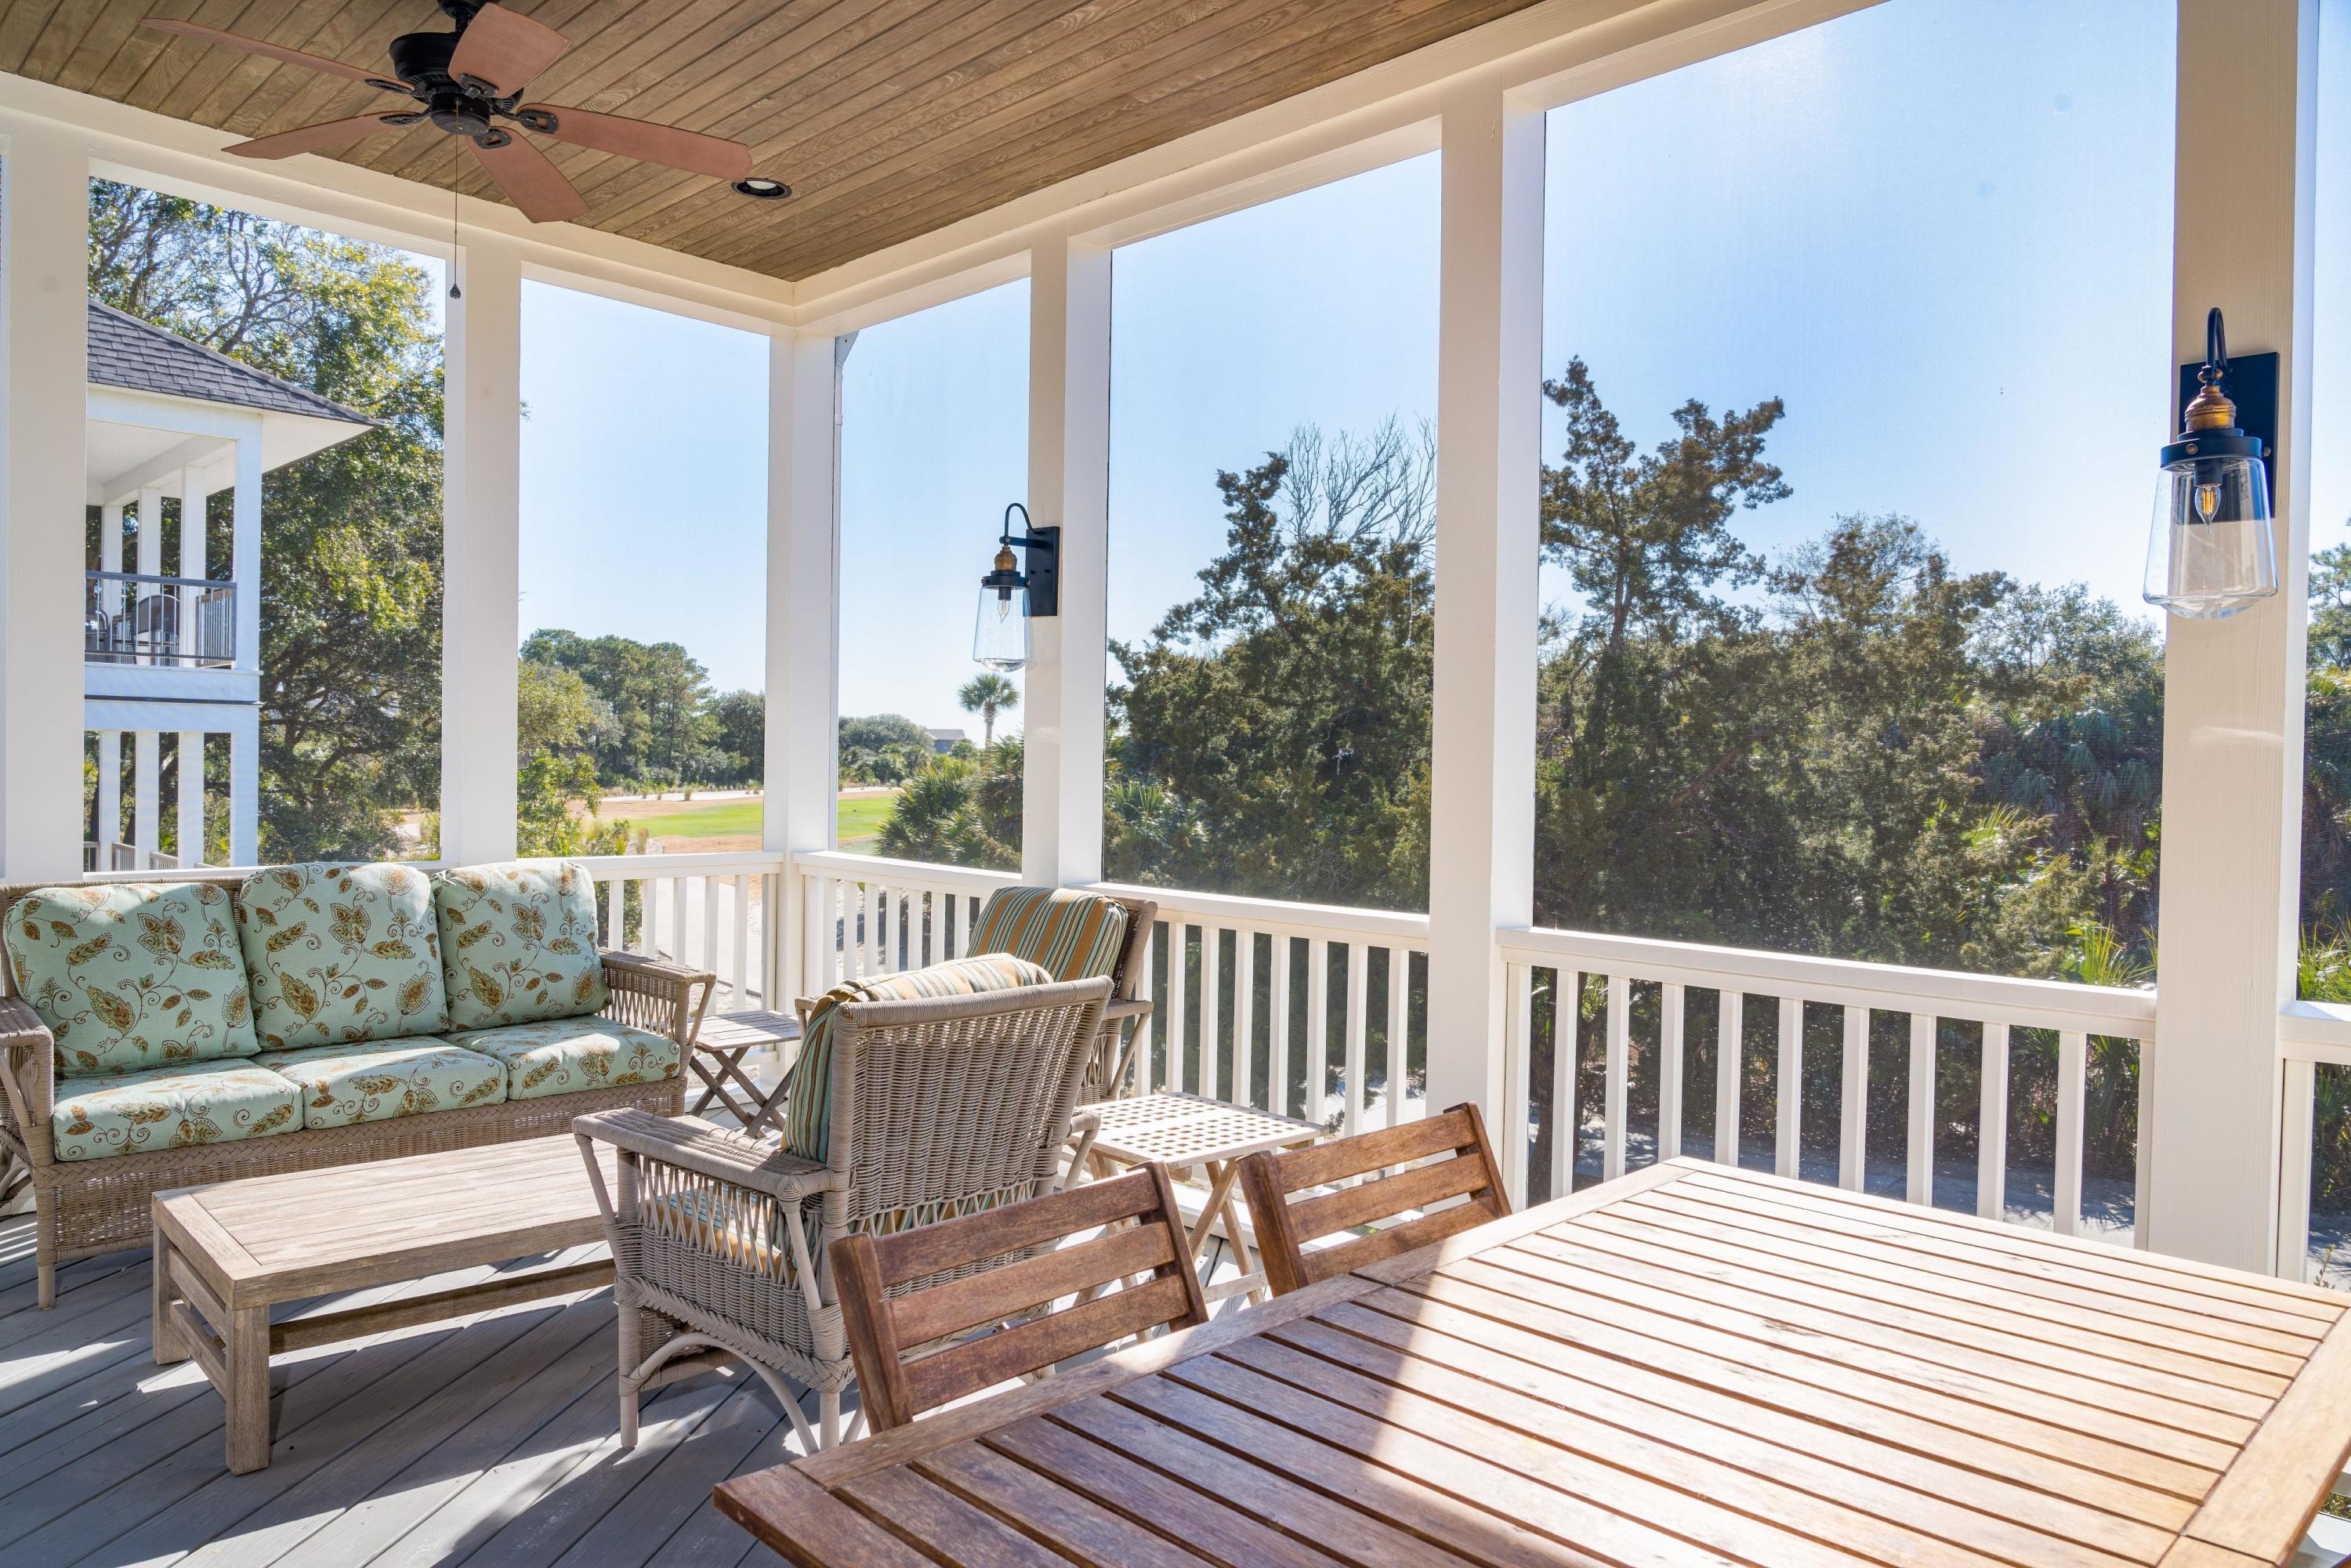 Seabrook Island Homes For Sale - 2335 Oyster Catcher, Seabrook Island, SC - 58